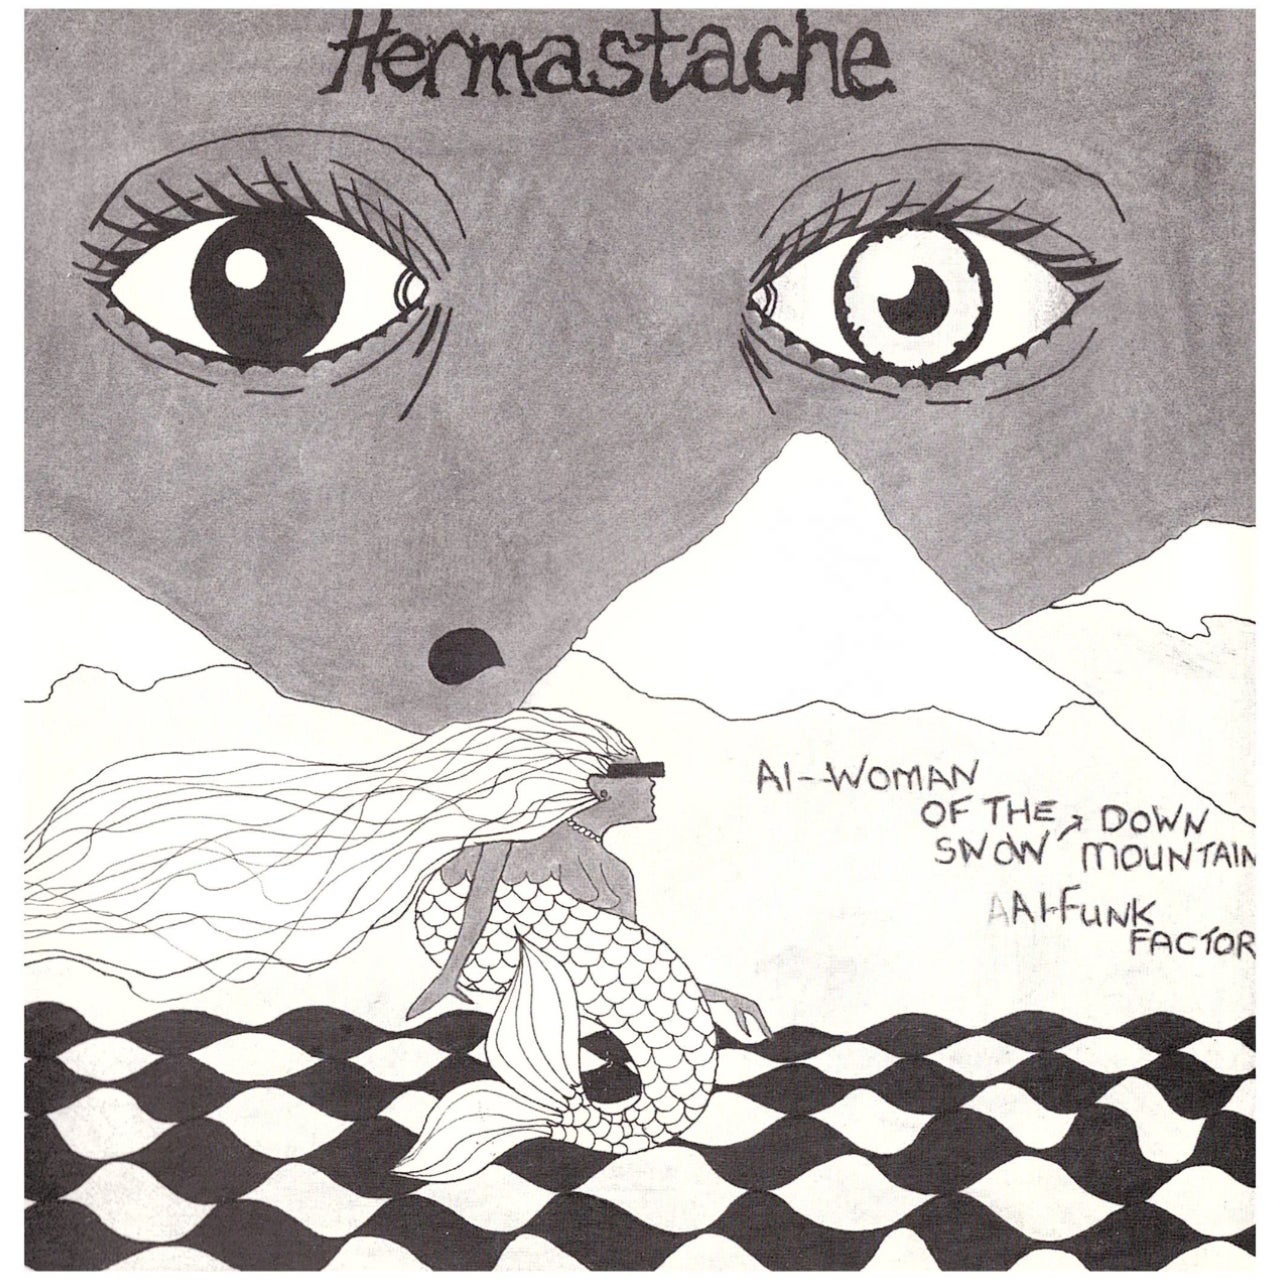 Image of Hermastache/ The Drezznels - Woman Of The Snow Down Mountain/ Class Distinction